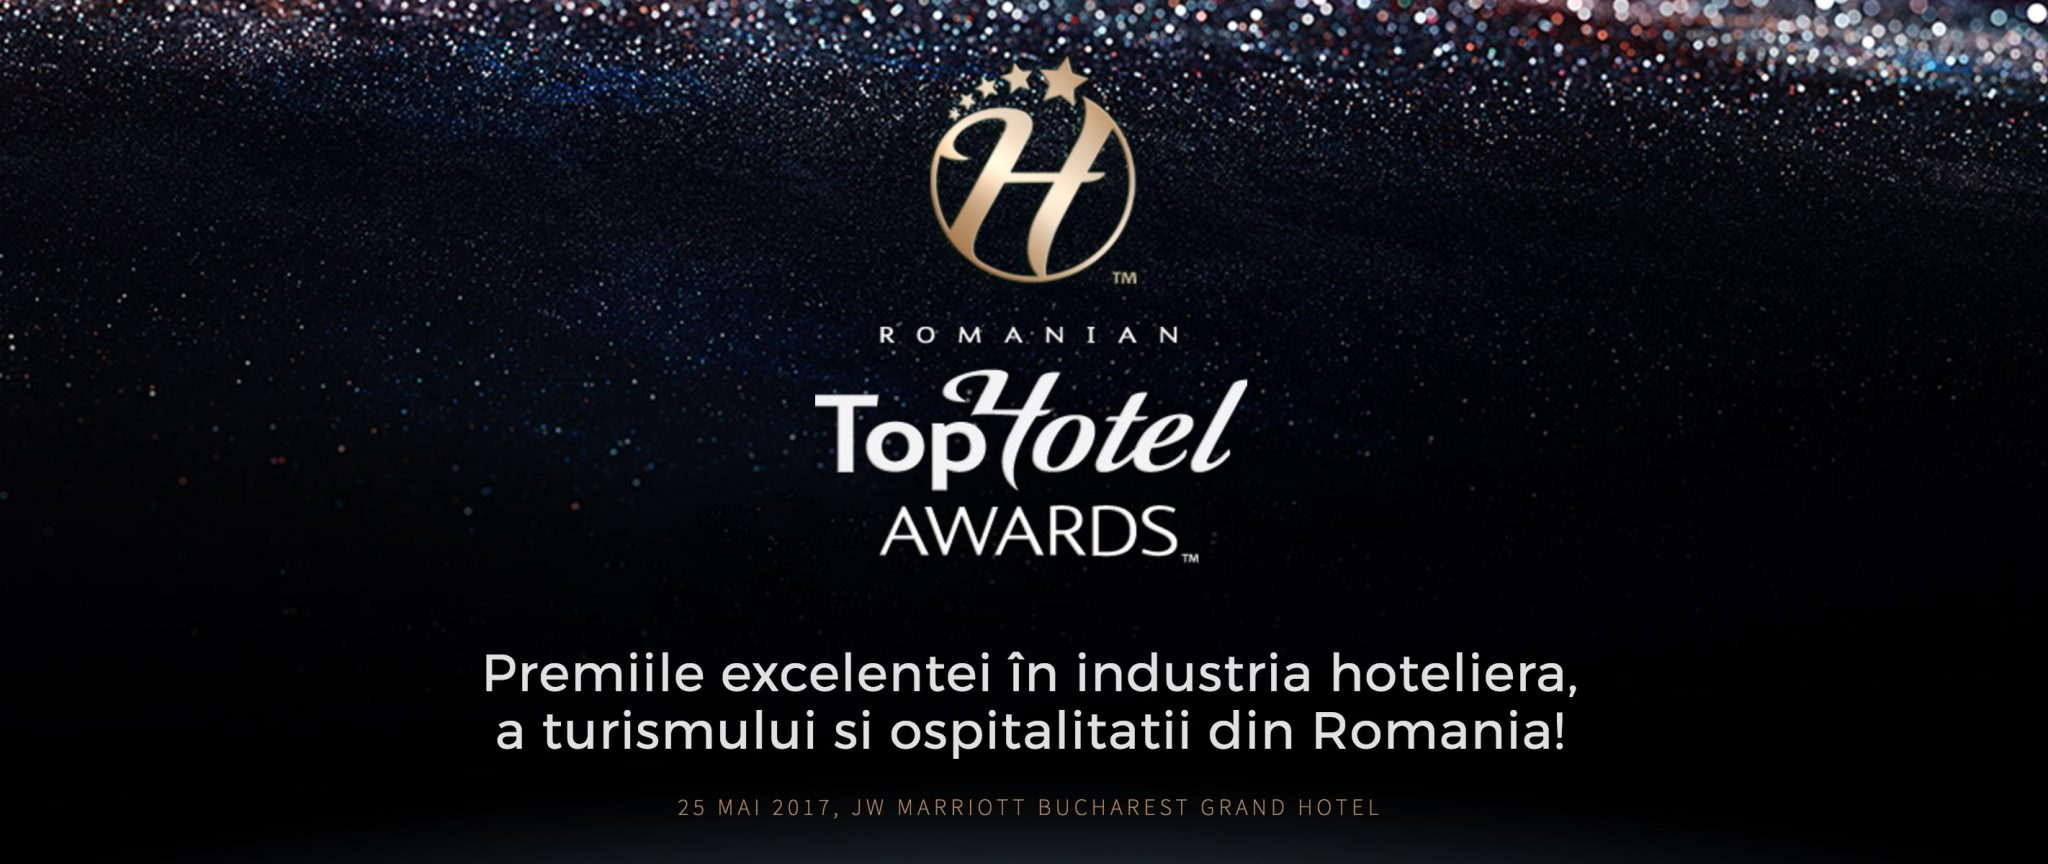 tophotel awards 2017